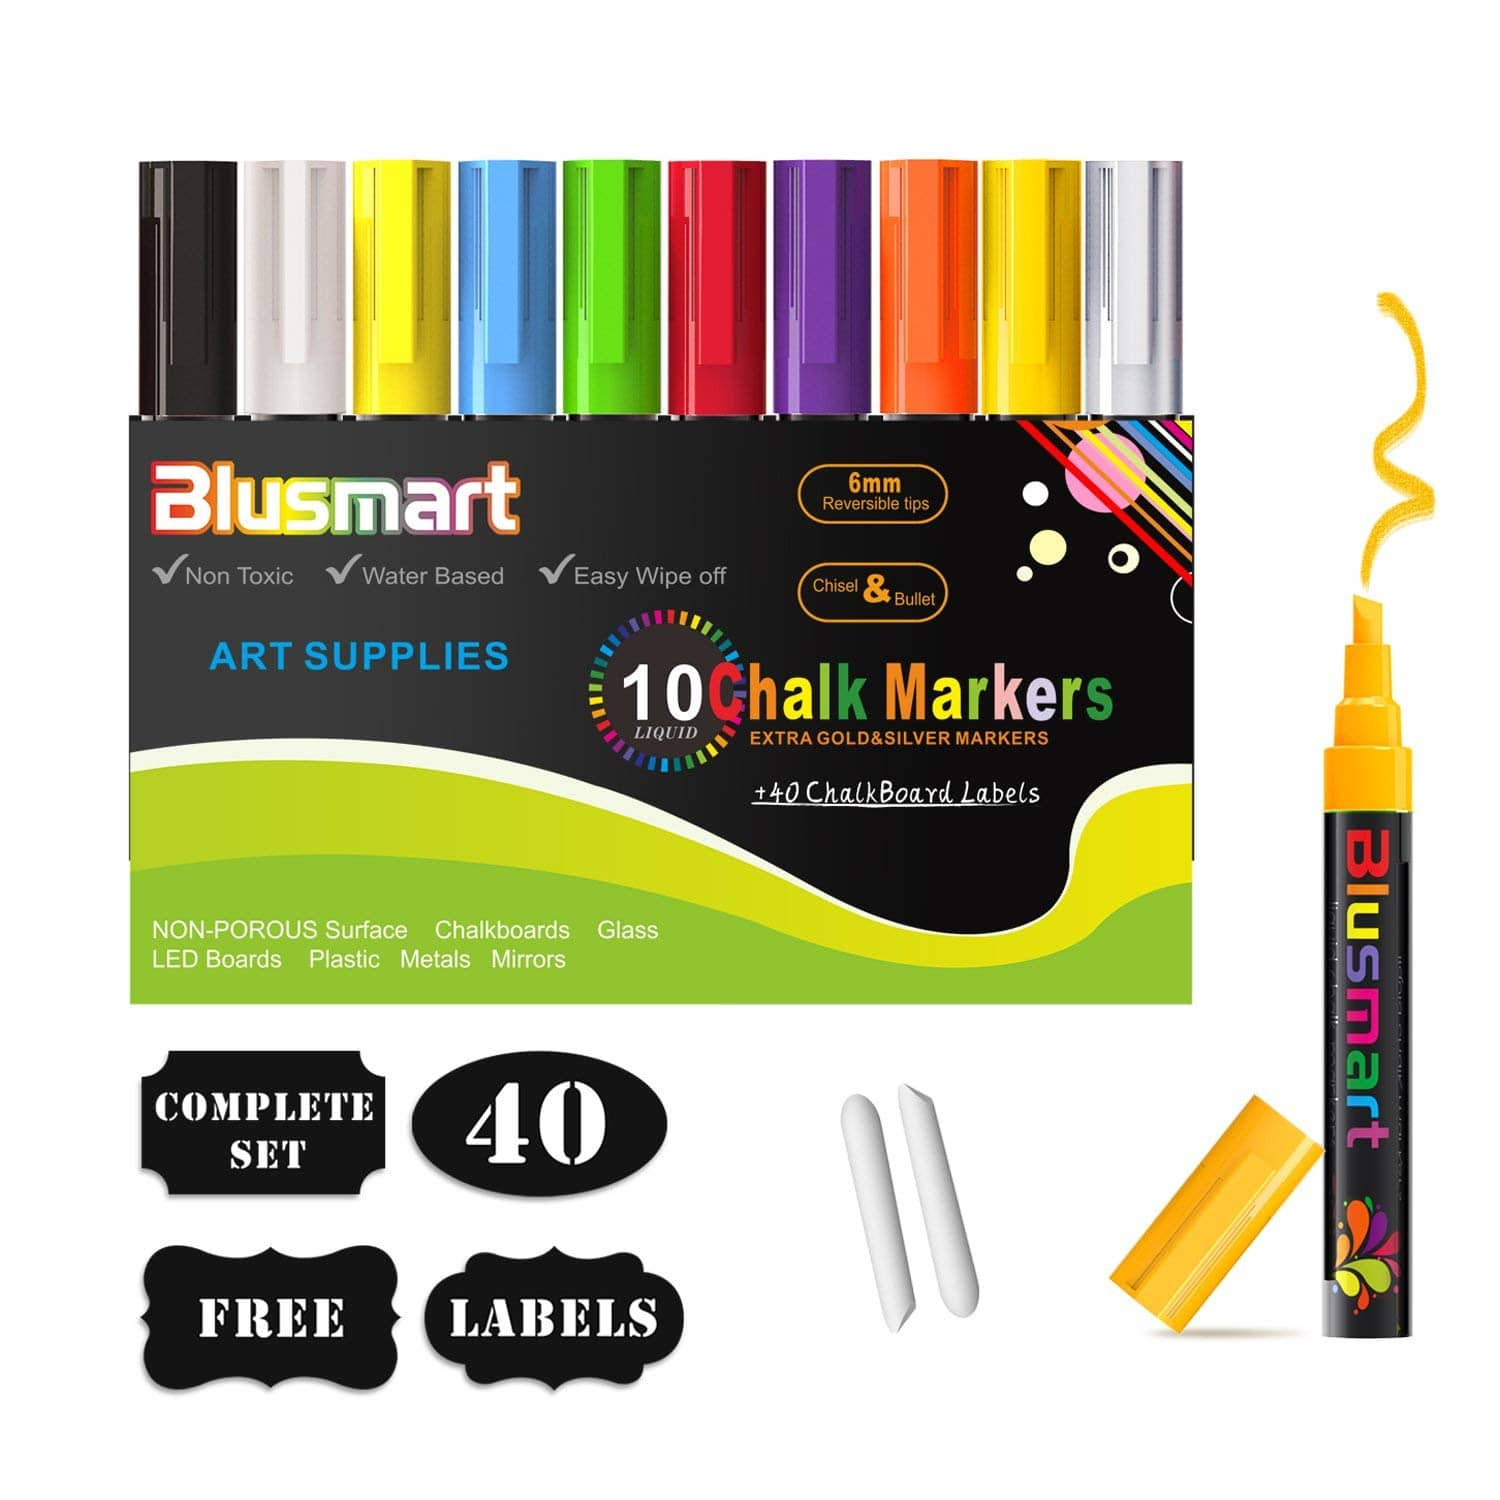 10 pack Reversible Tip Chalk Markers + 40 Labels $6.95 @ Amazon